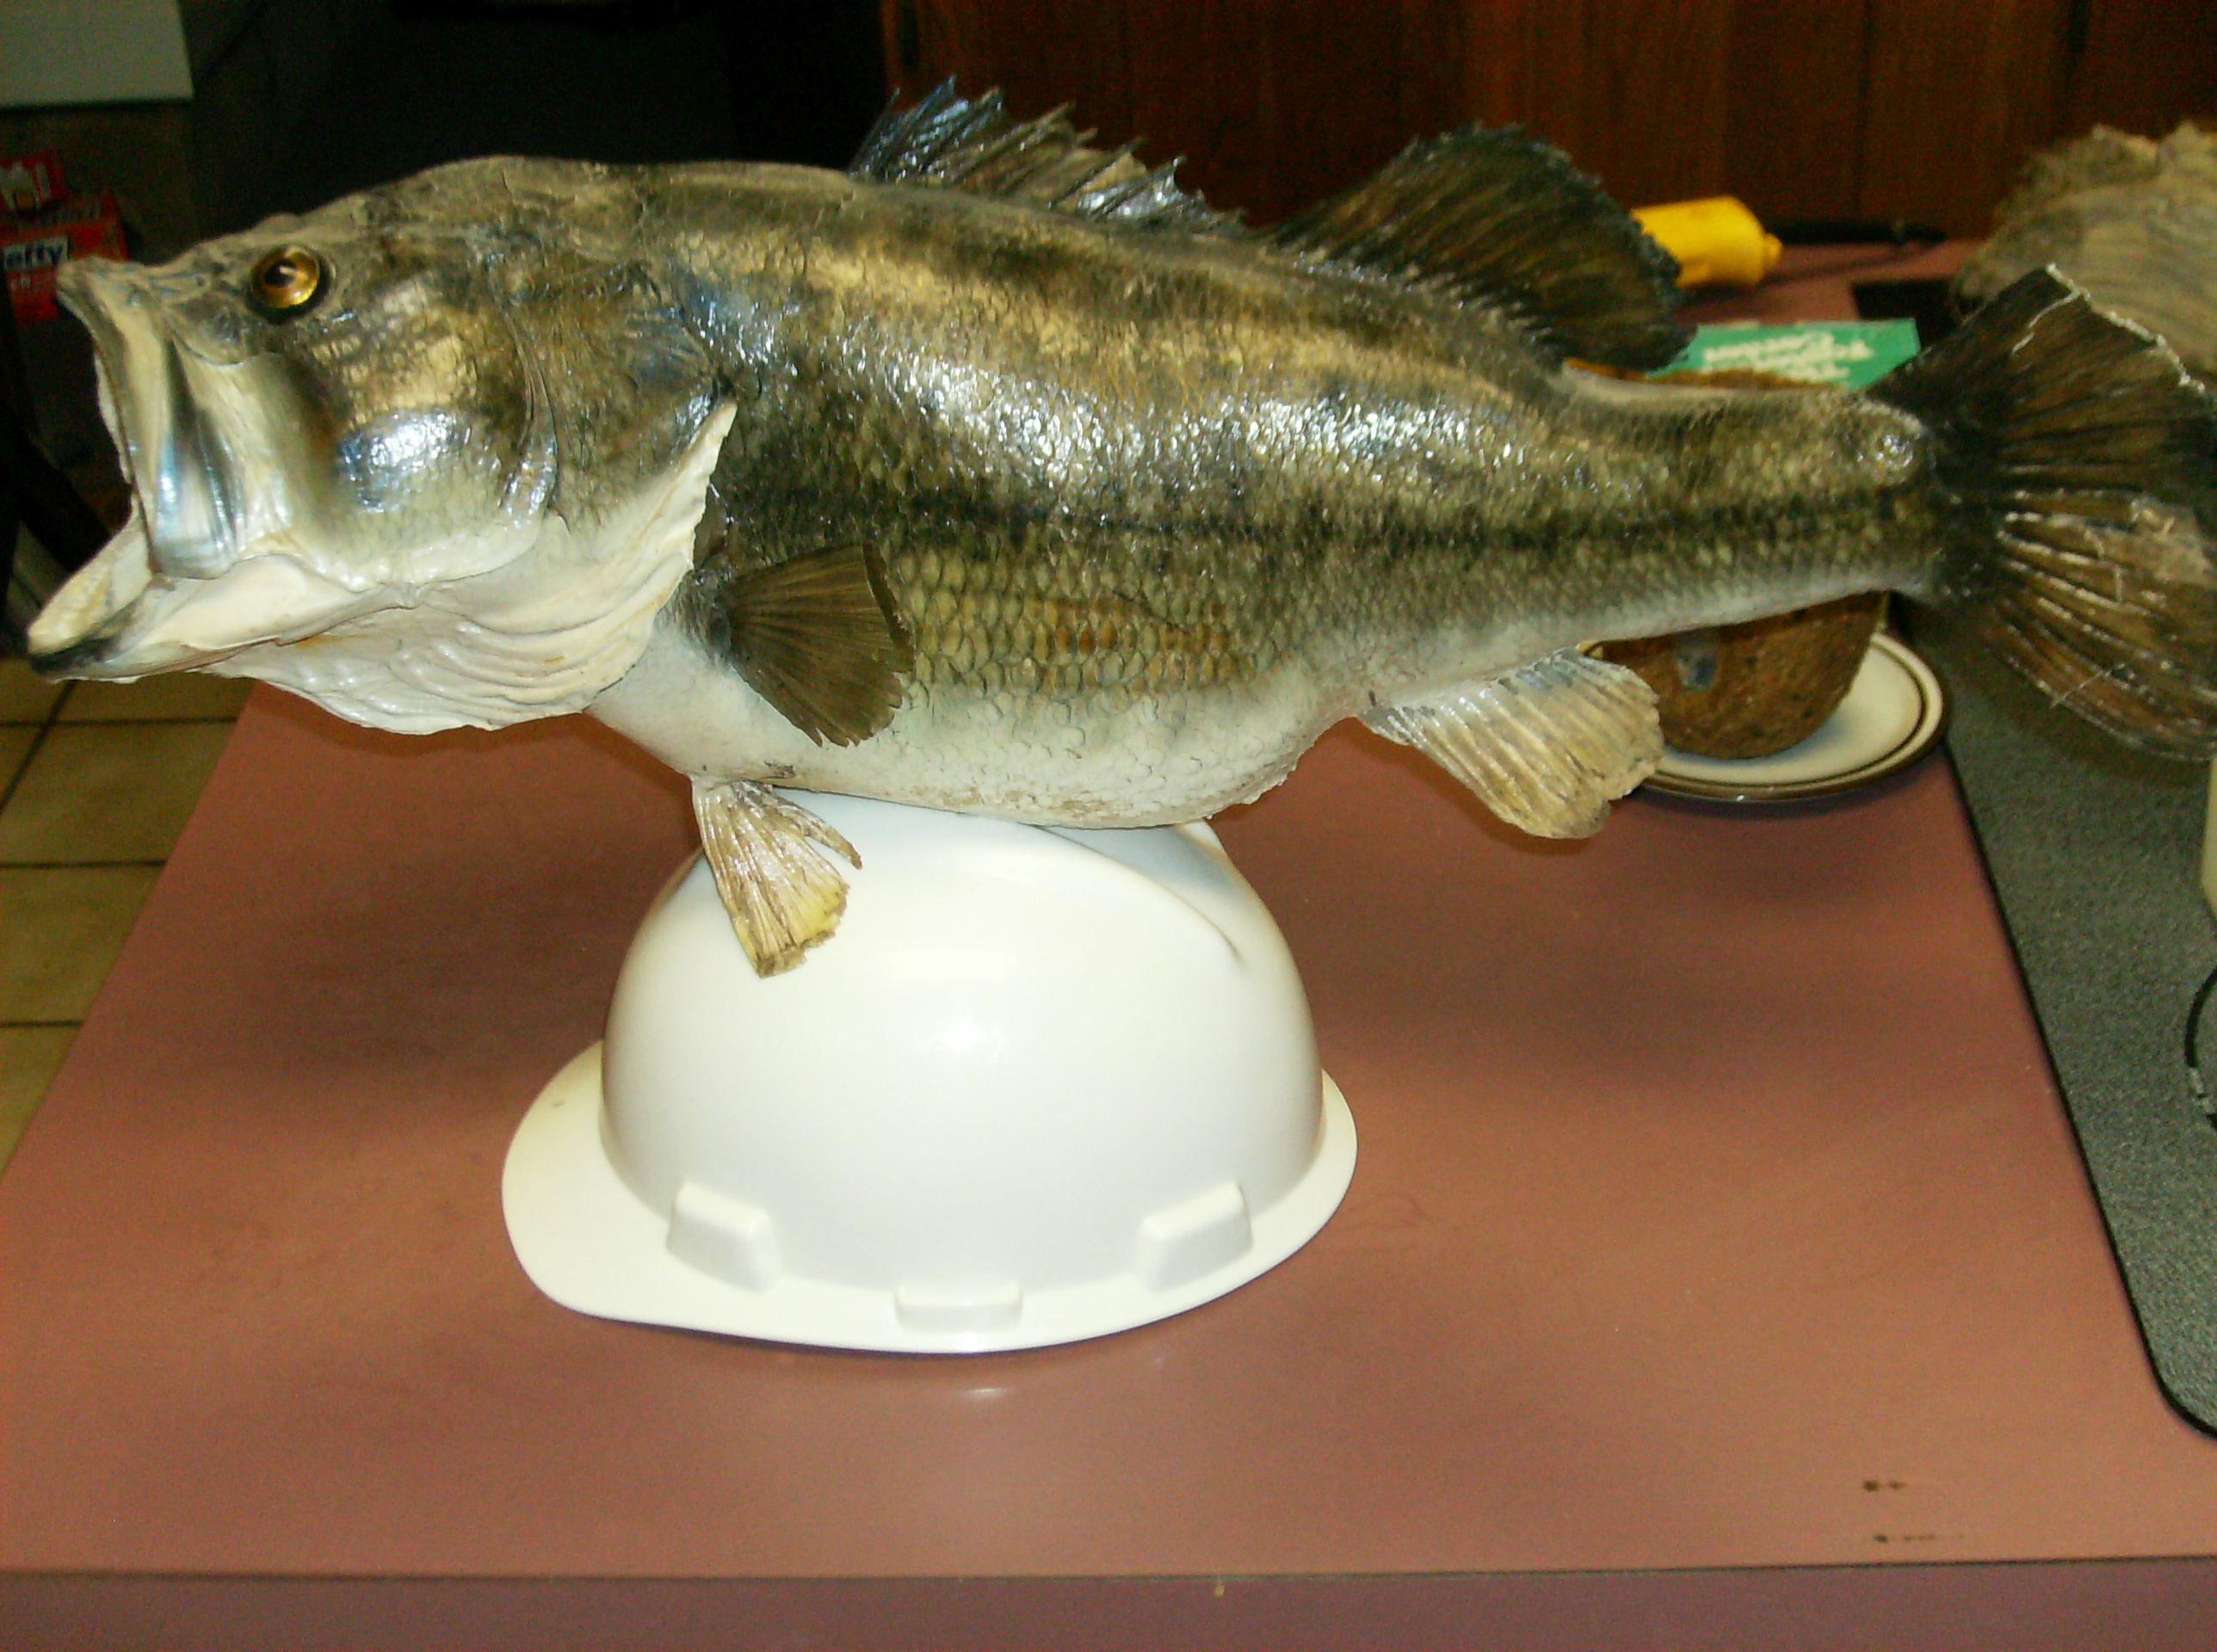 The Taxidermied Fish Helmet!